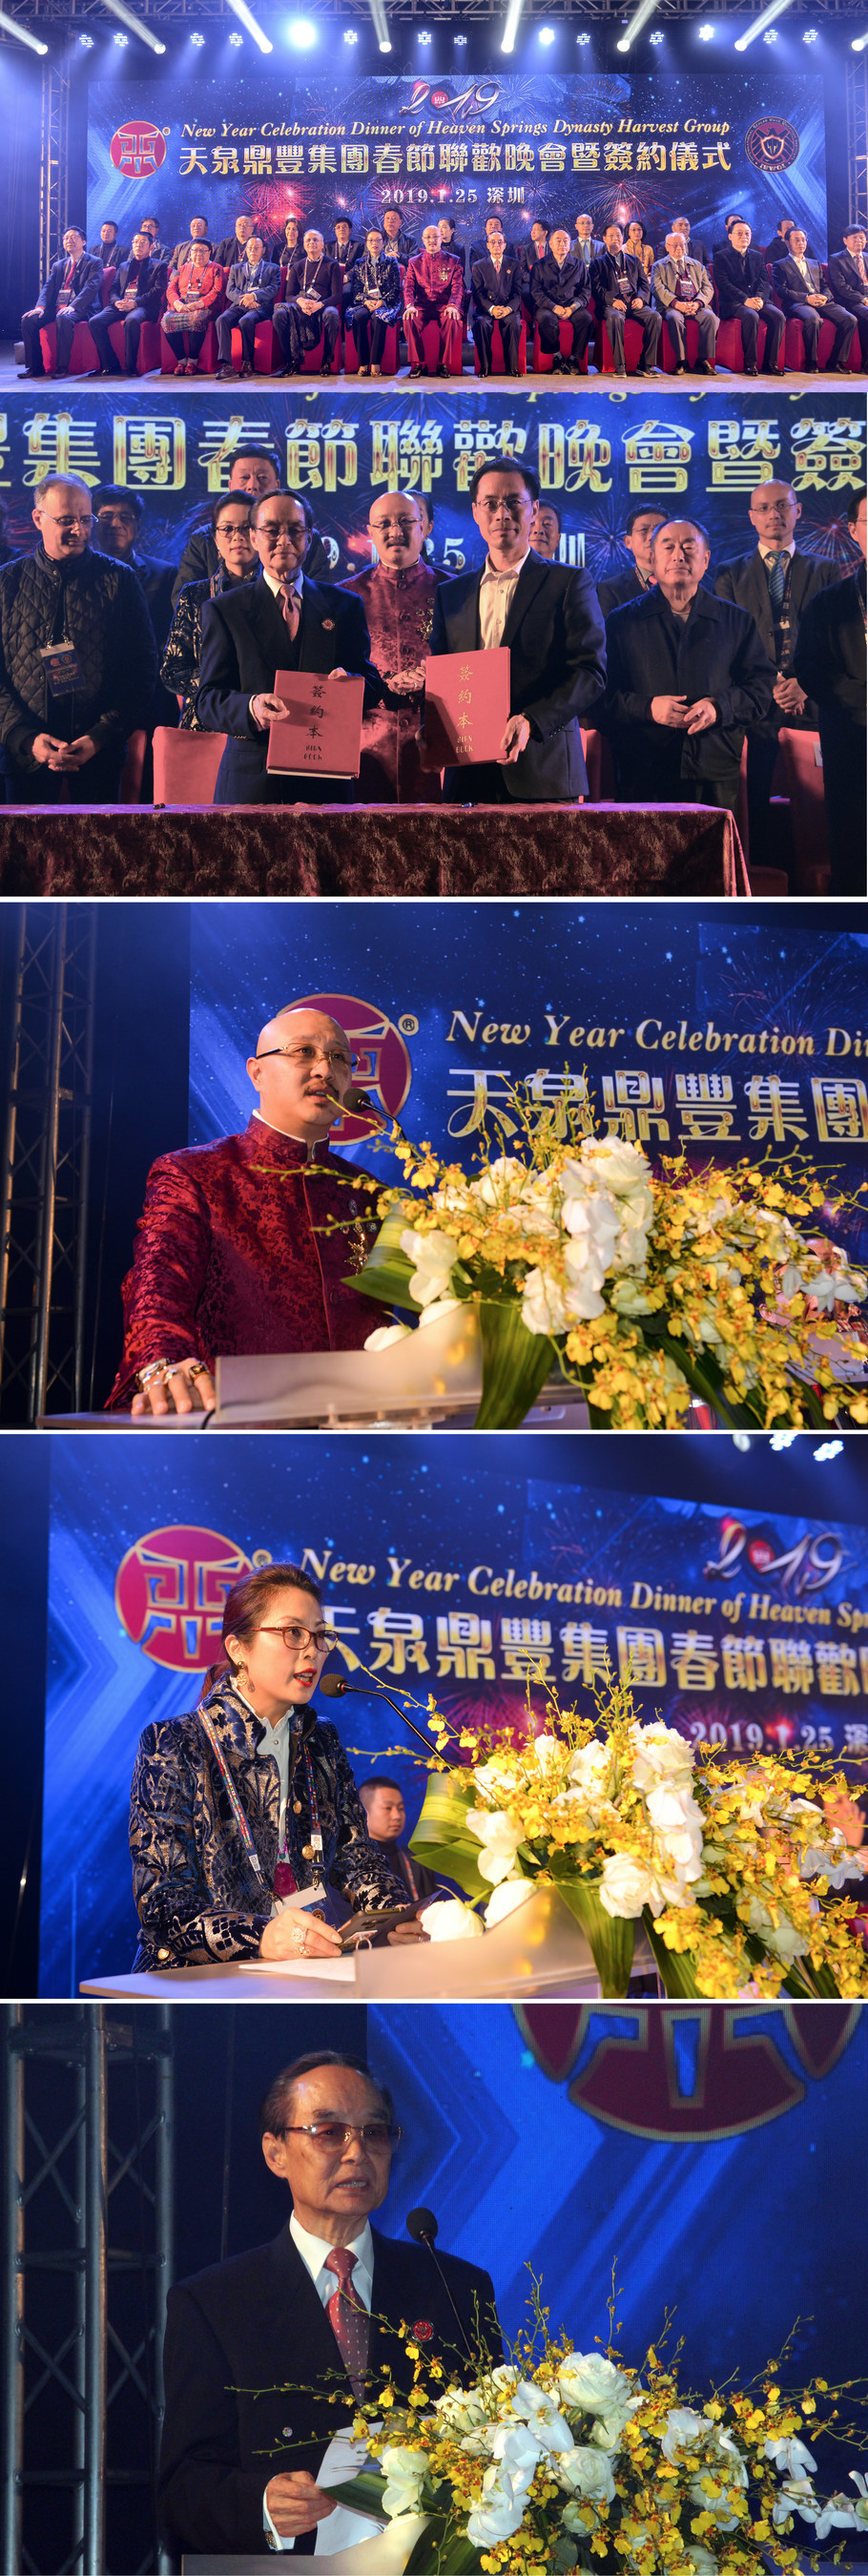 Figure 1: Group Photo of Heaven Springs Dynasty Harvest Spring Festival Gala Dinner and Signing Ceremony Officiating Guests. Figure 2: Signing Ceremony. Figure 3: Speech of Founder Dato' Sri Prof. Ng Tat-yung. Figure 4: Speech of Chairman Datin Sri Dr. Irys Ng. Figure 5: Speech of Vice-Chairman Miao Geng-shu